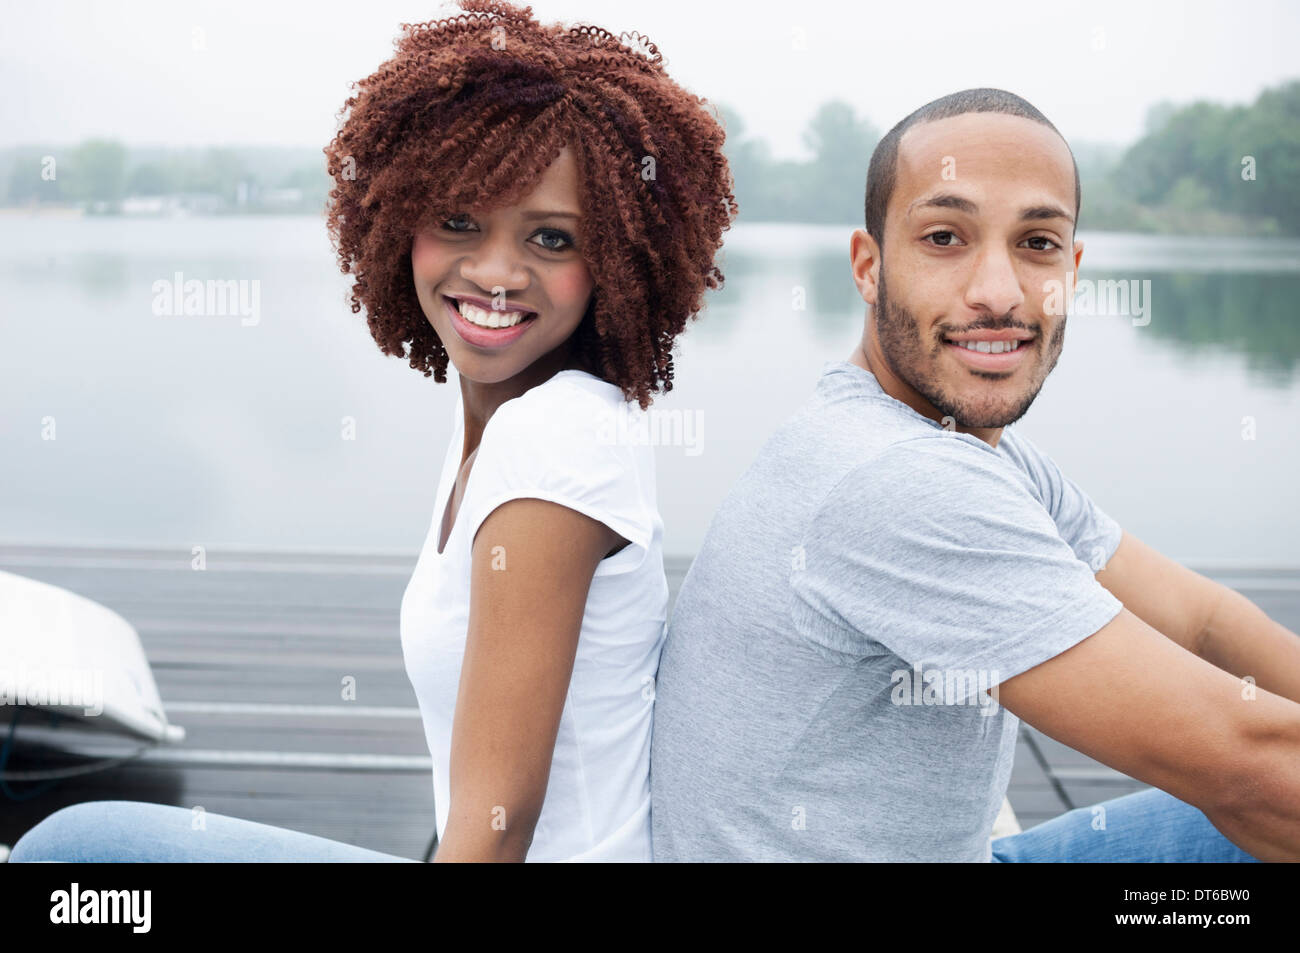 Portrait of young couple smiling, back to back - Stock Image